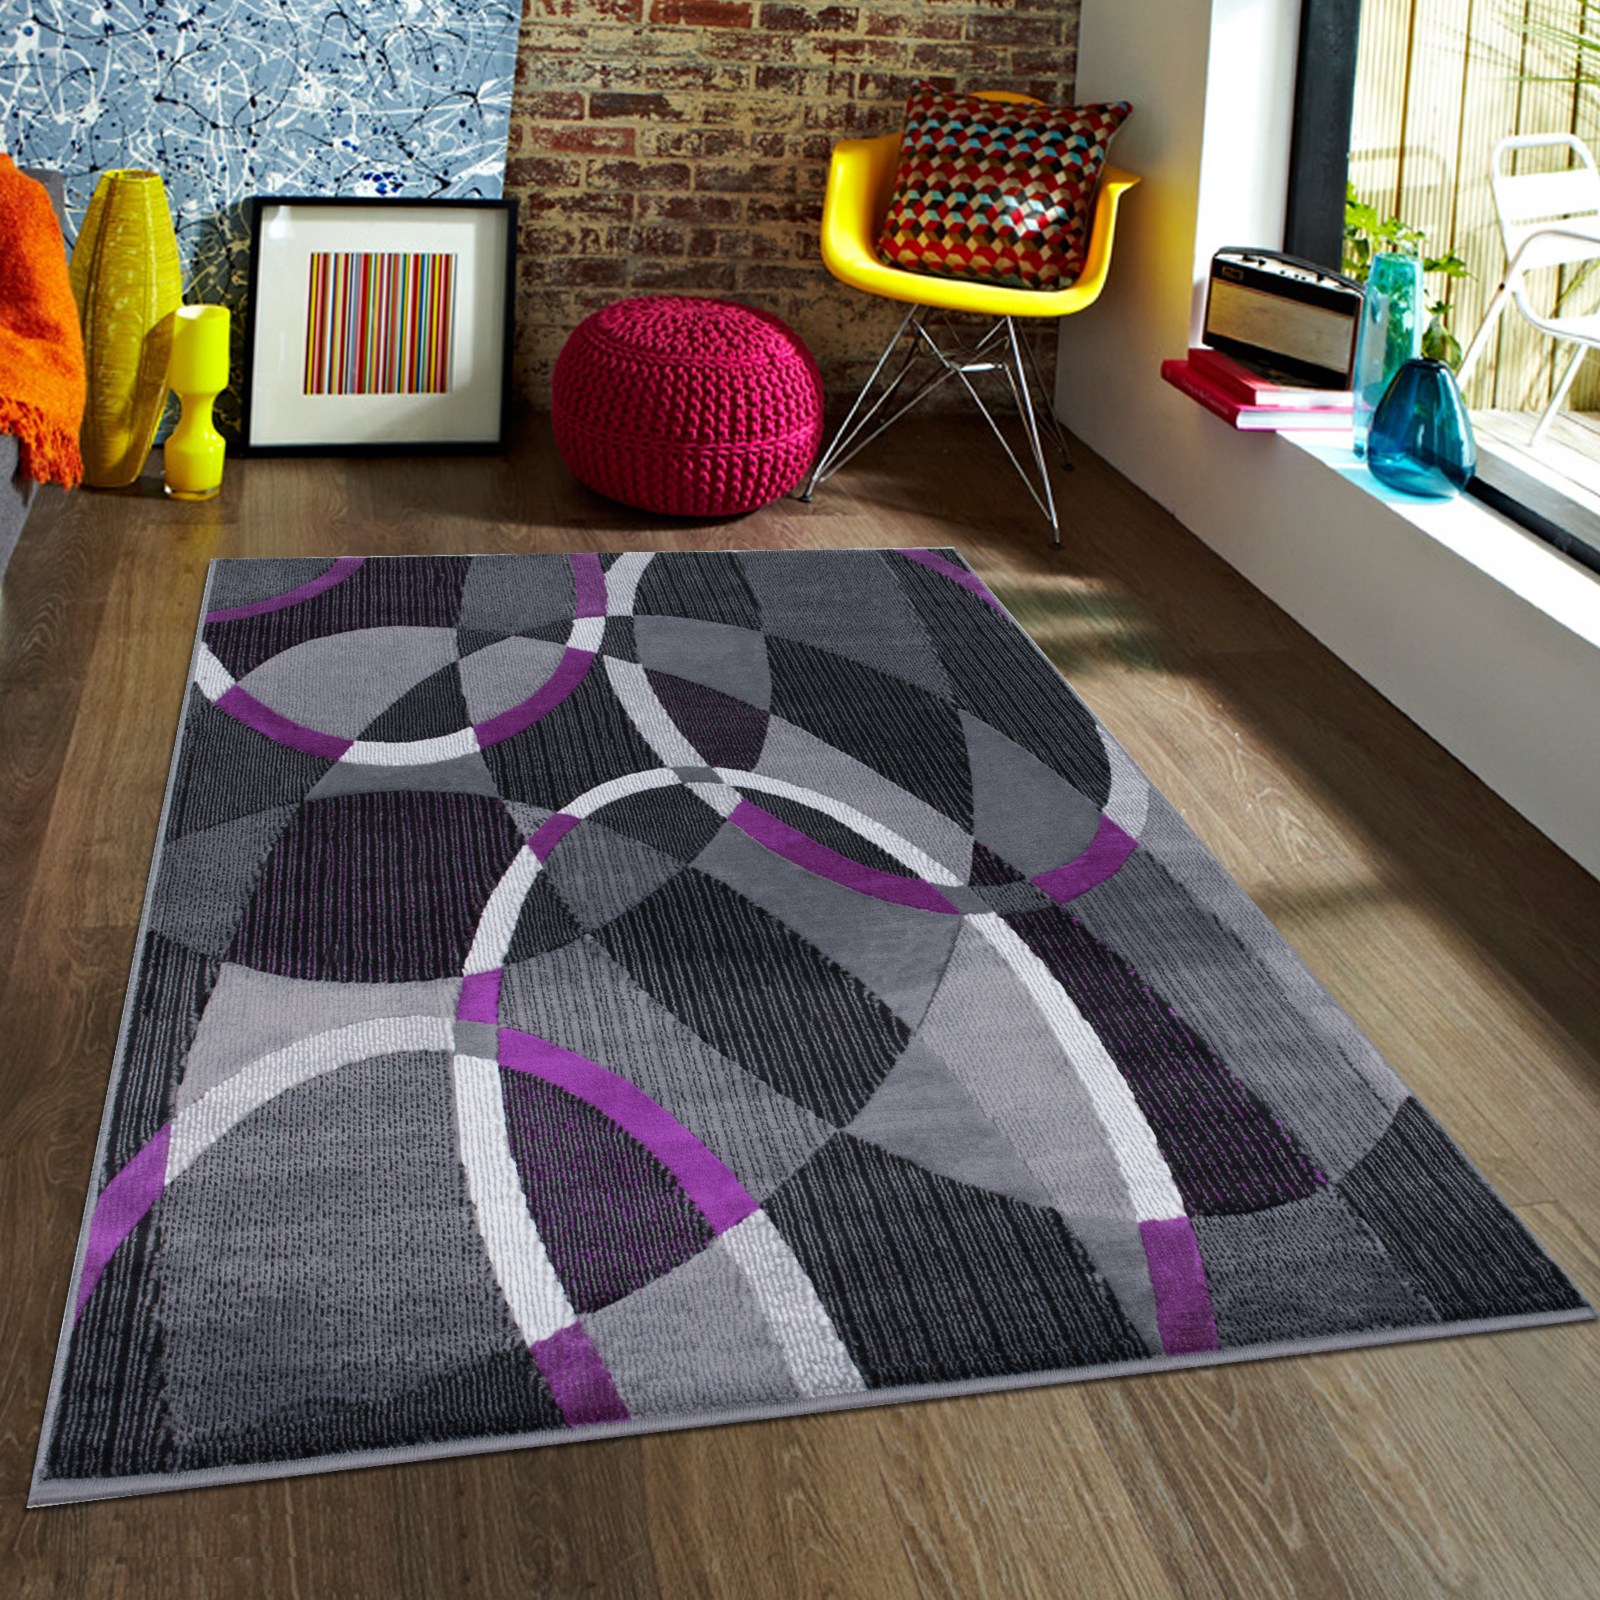 Beau Purple AllStar Modern. Contemporary Woven Area Rug. Drop Stitch Weave  Technique. Carved